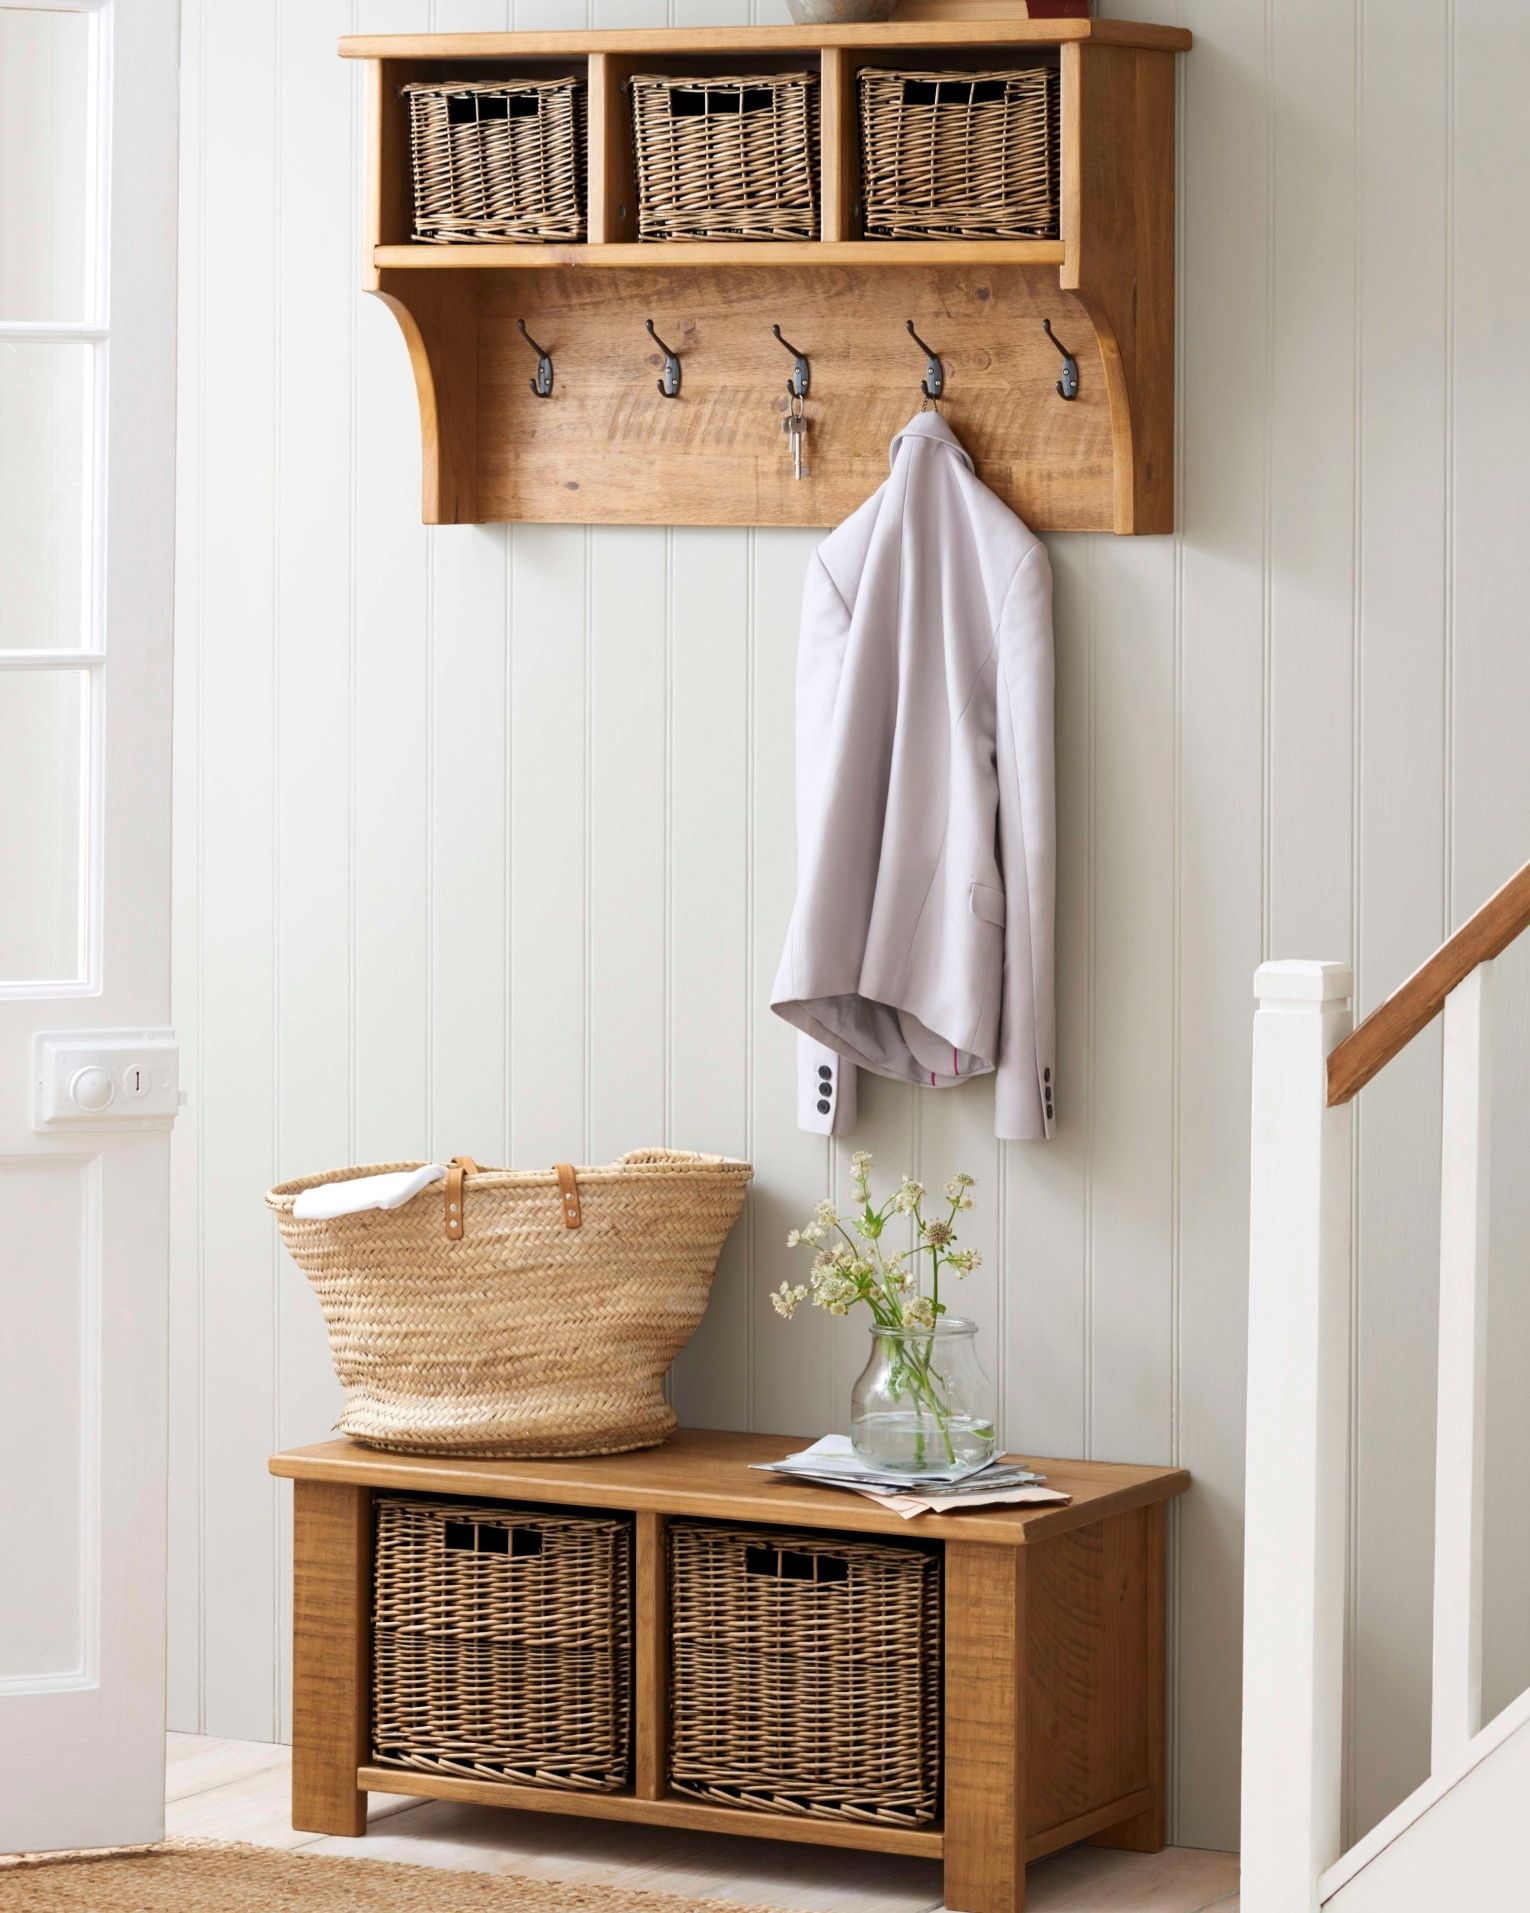 Storage ideas for hallway  Donut you wish your family hallway could look this neat Add some